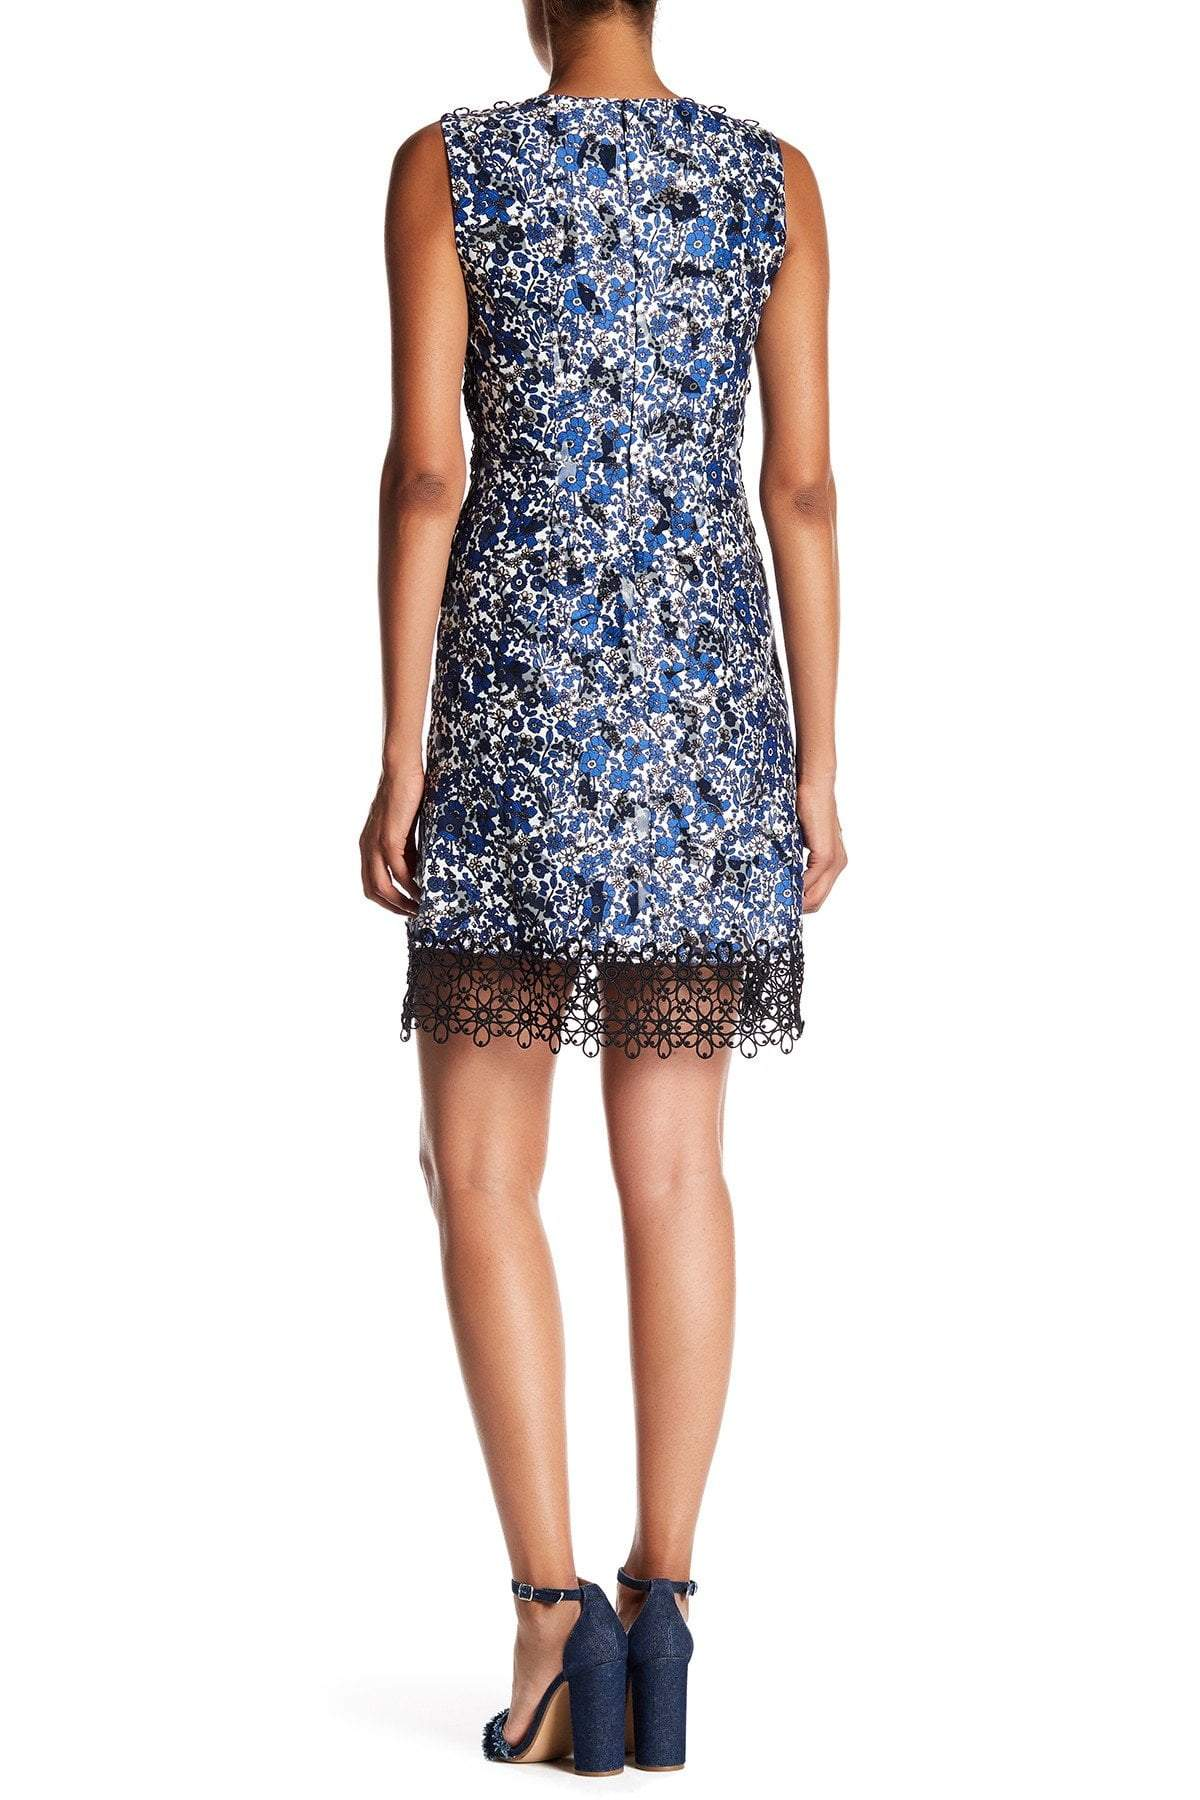 Elie Tahari - E40F9617 Floral Printed Crochet A-line Dress In Blue and Black